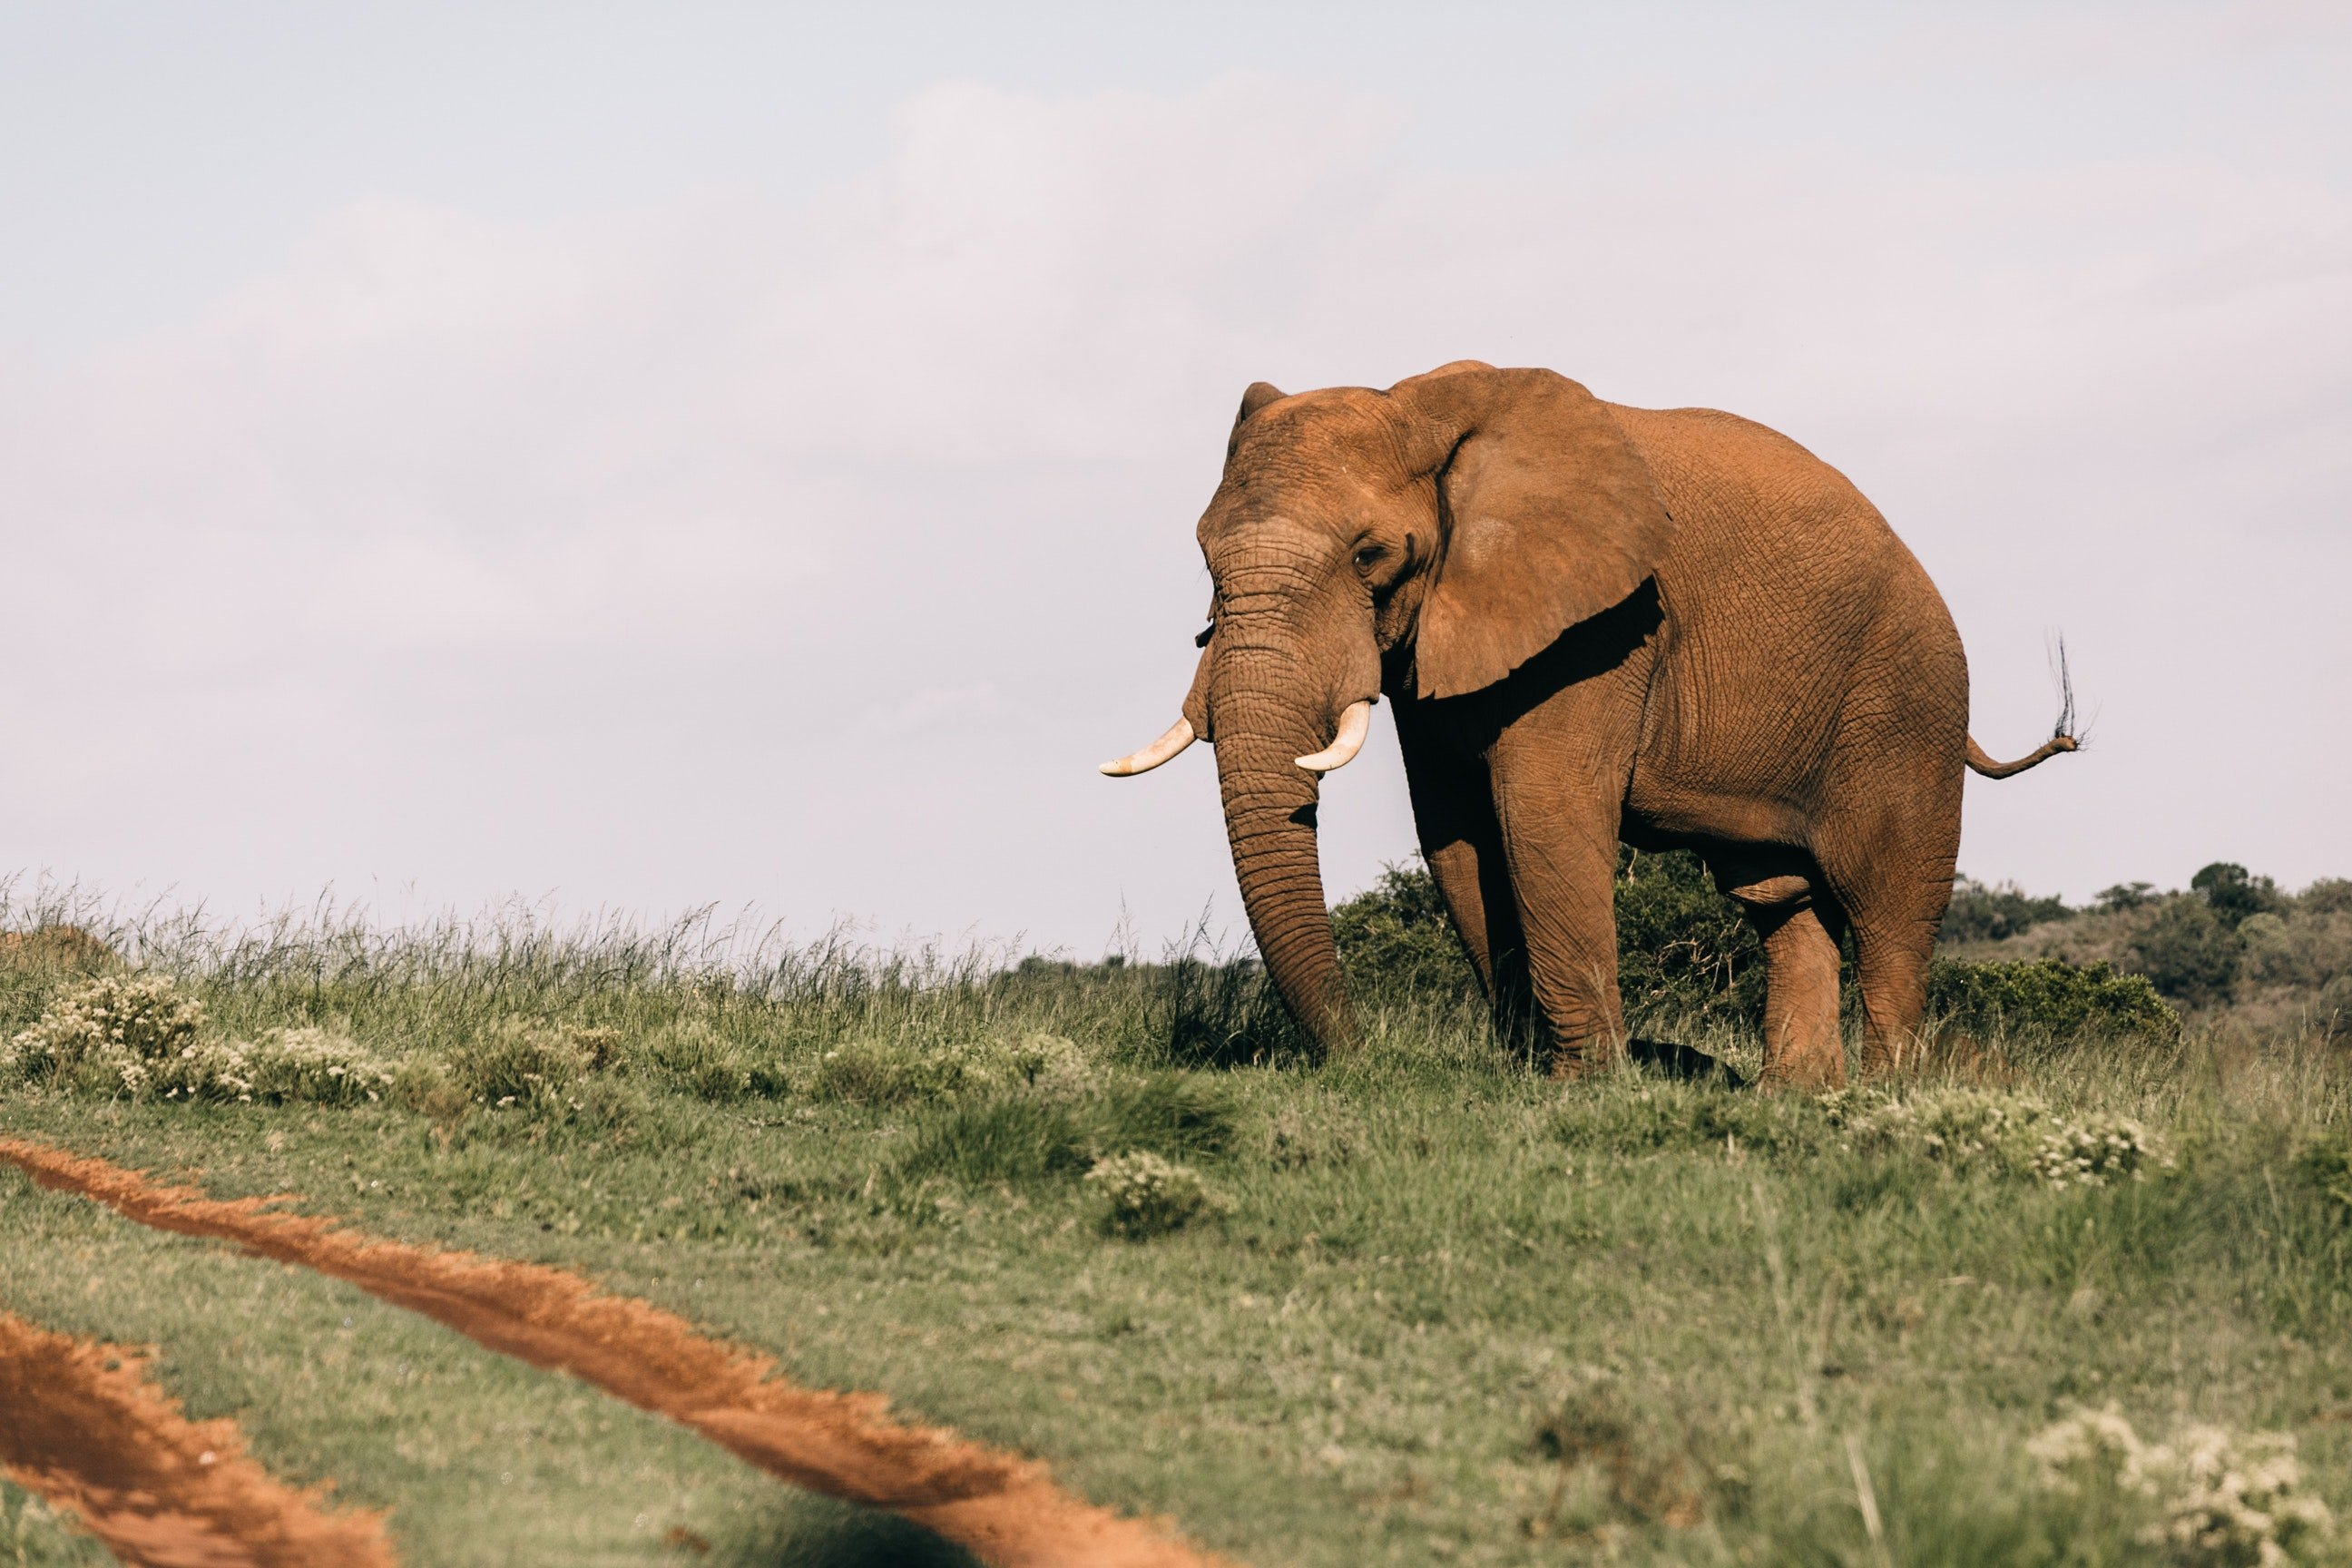 Pictured - A photo of an elephant on grassy fields | Source: Pexels